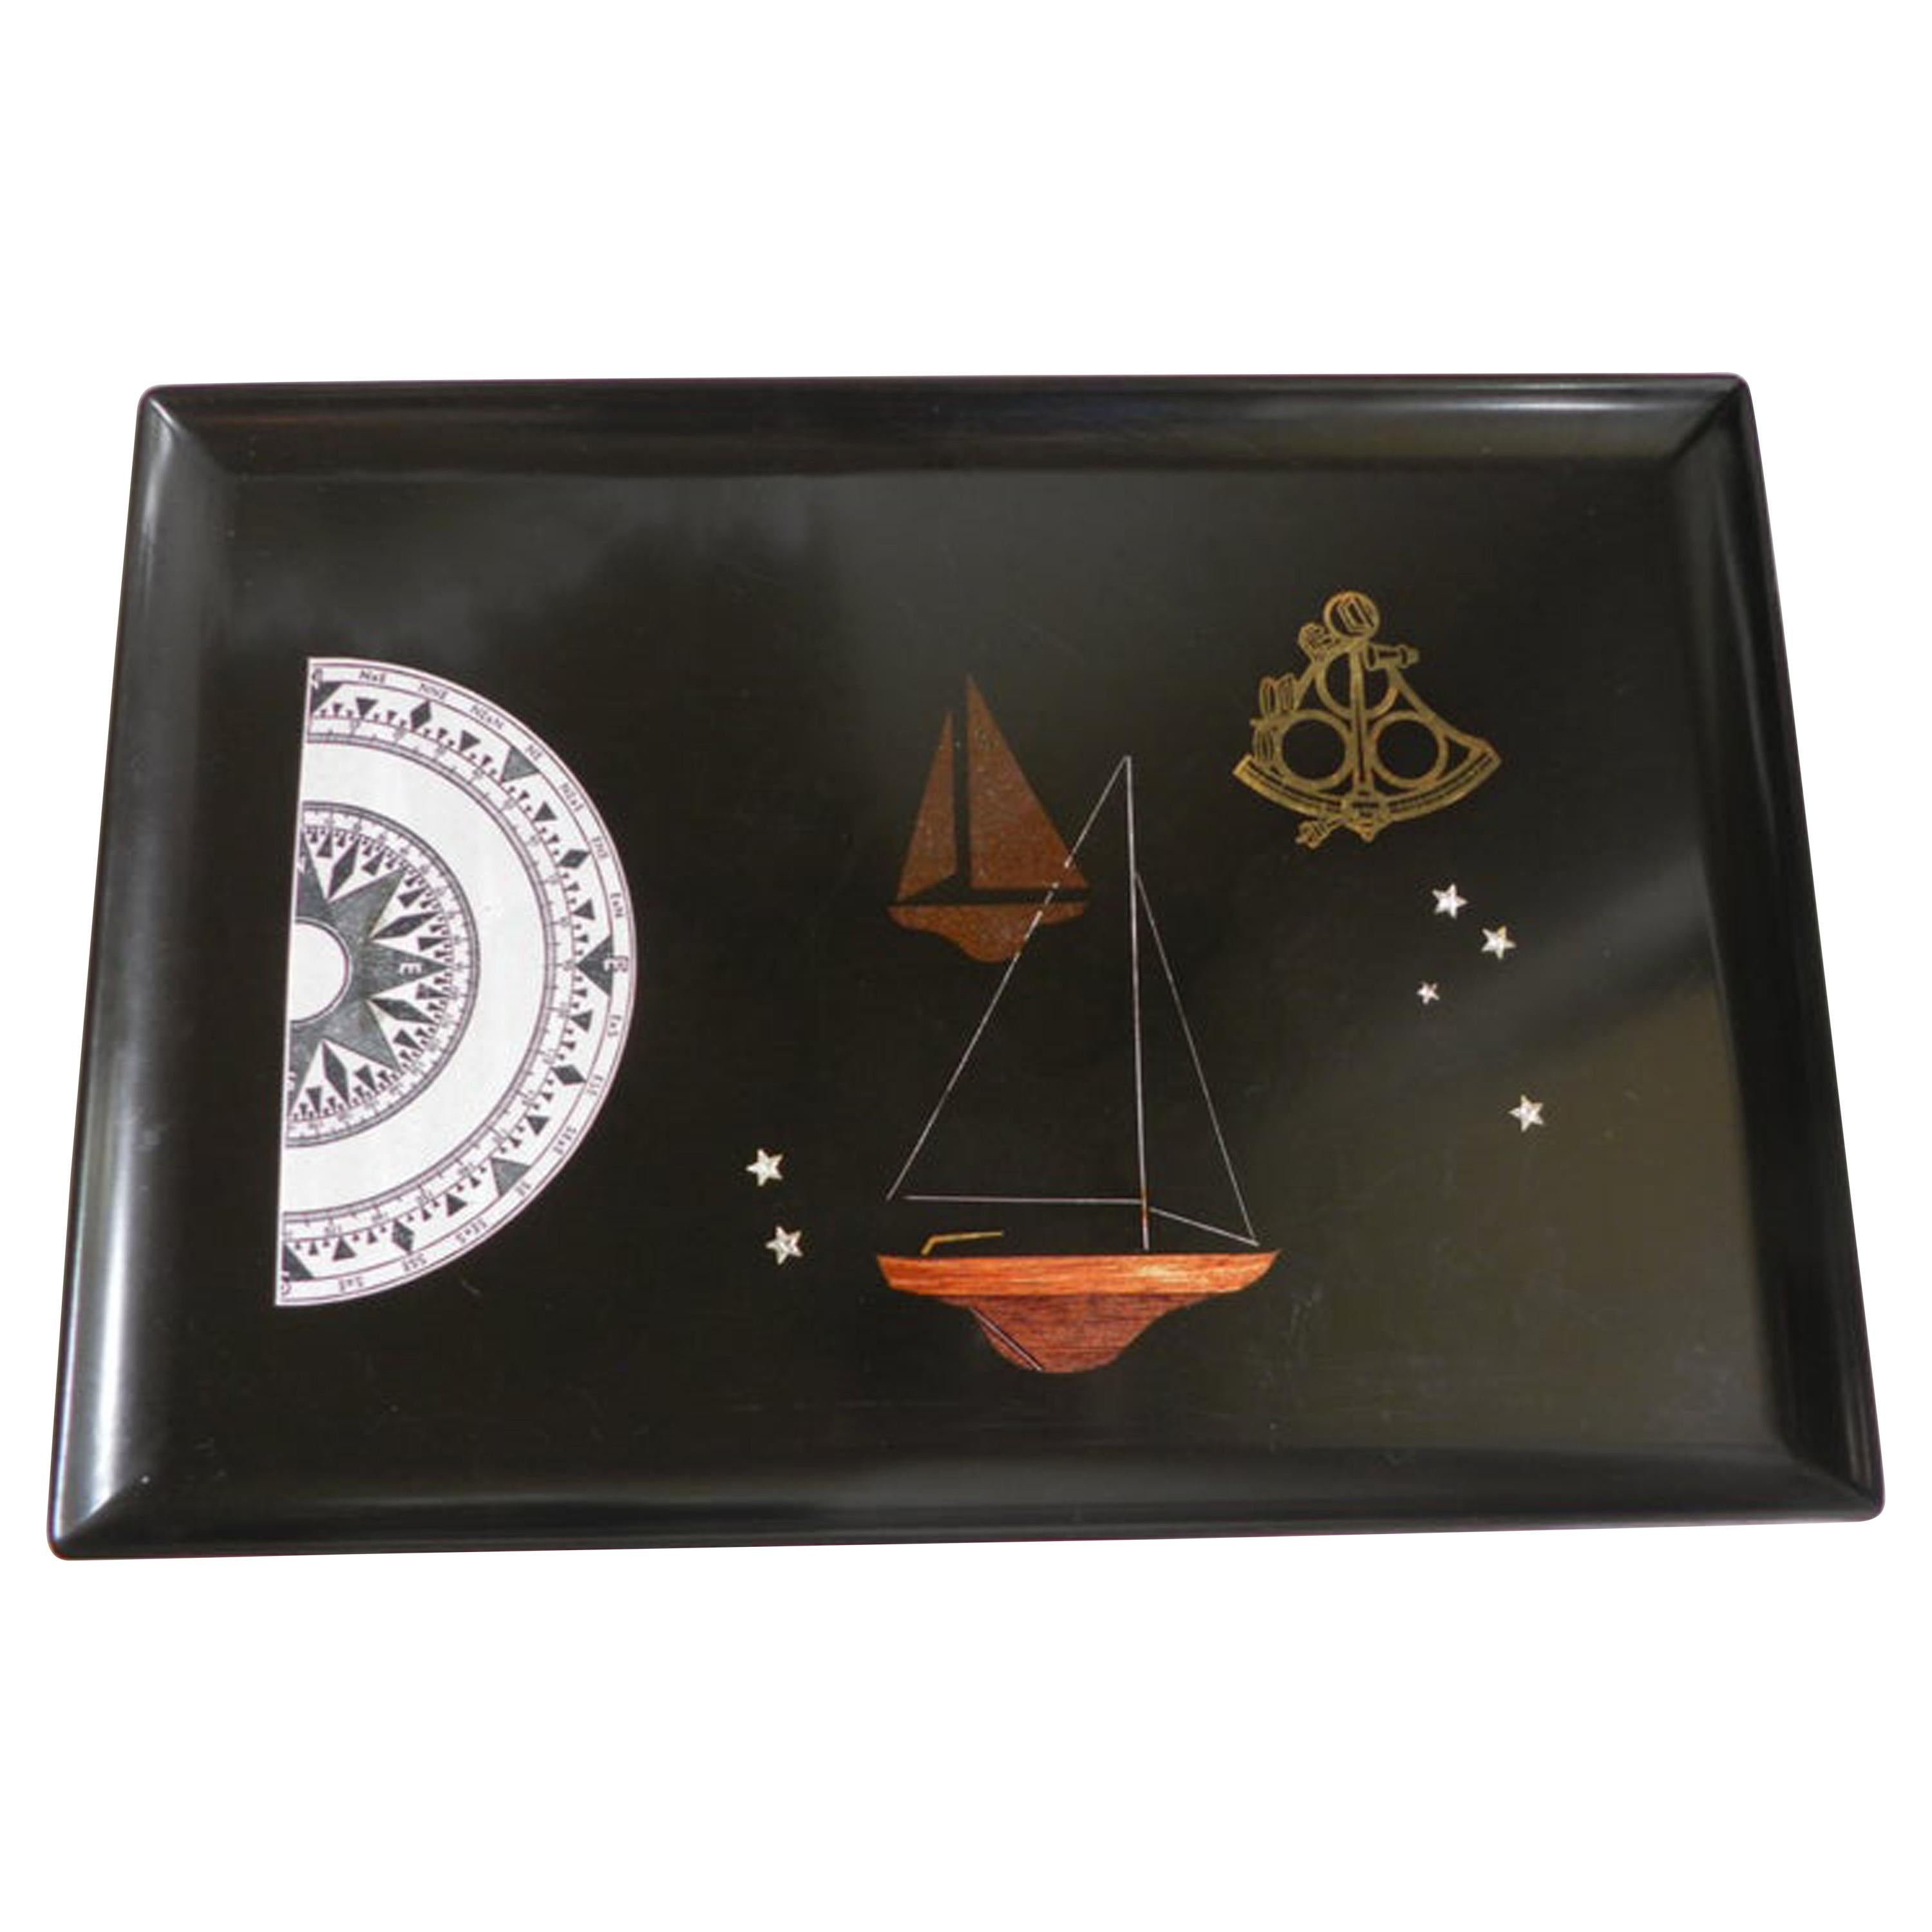 Couroc Resin Tray with Sailing Ships and Compass